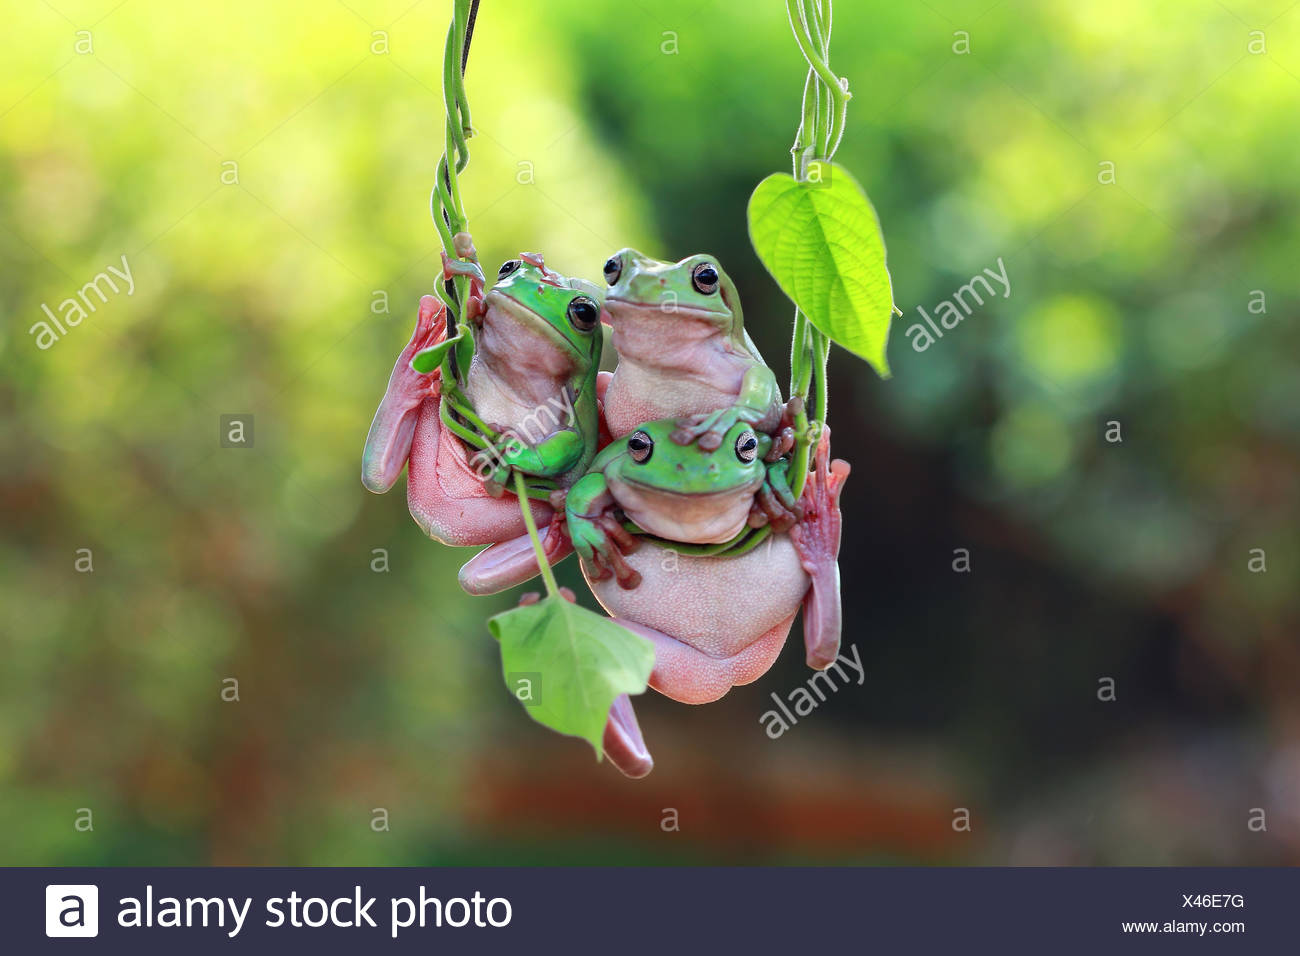 Three dumpy tree frogs hanging on vine, indonesia - Stock Image